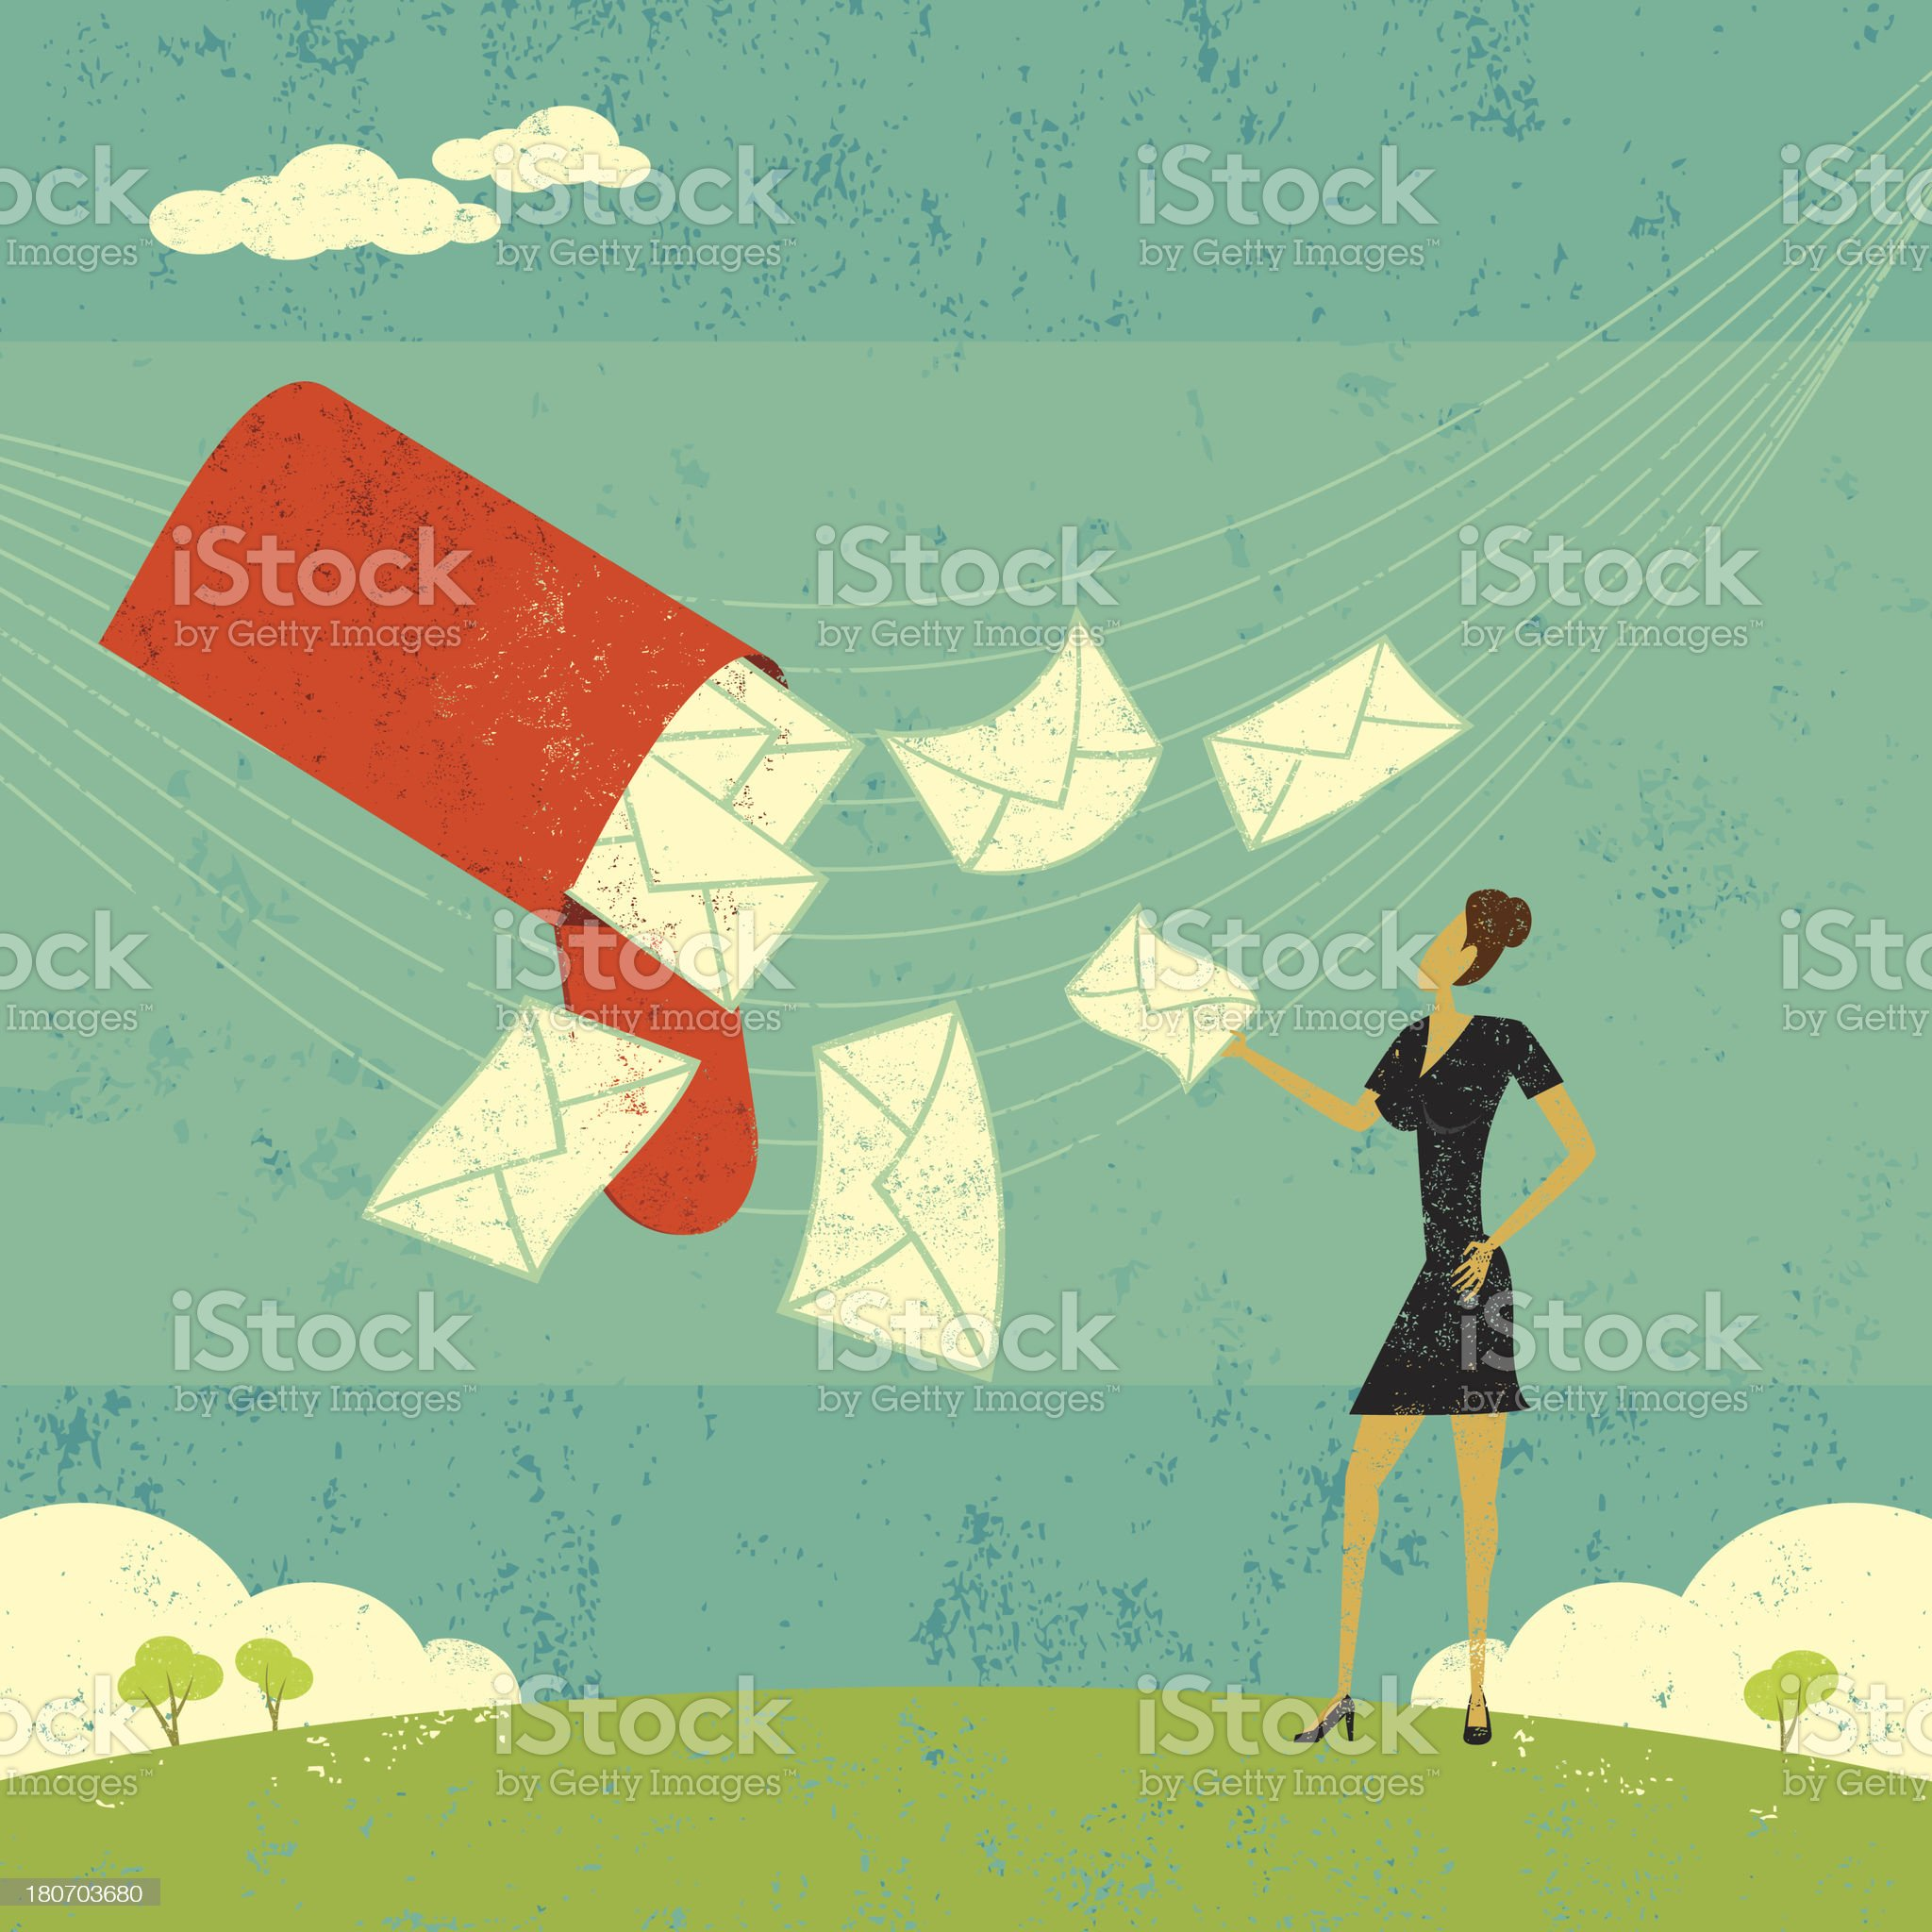 New Emails royalty-free stock vector art